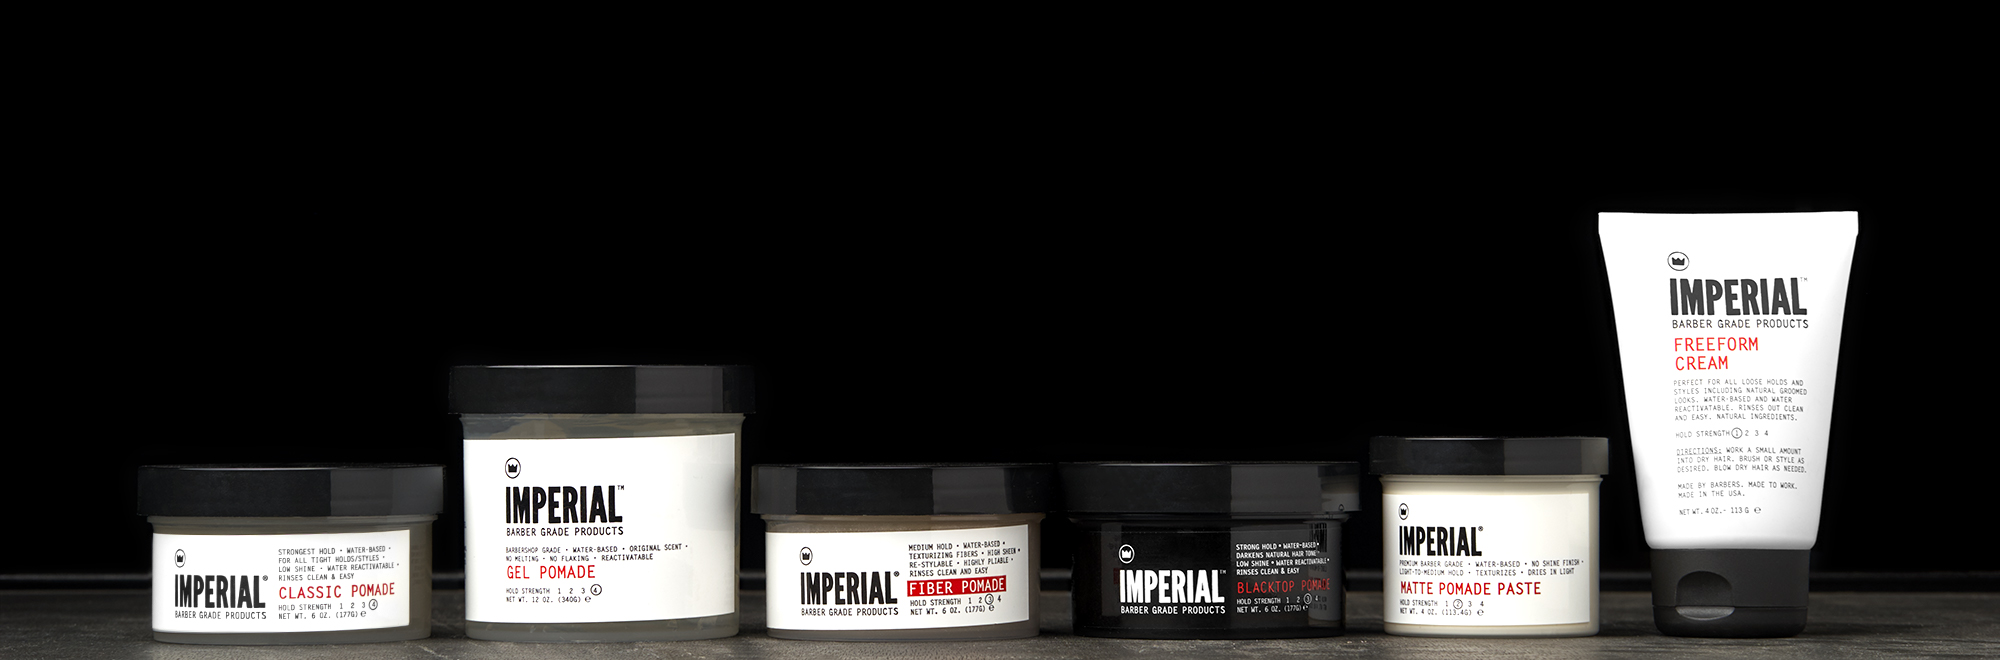 Hair - Imperial Barber Products